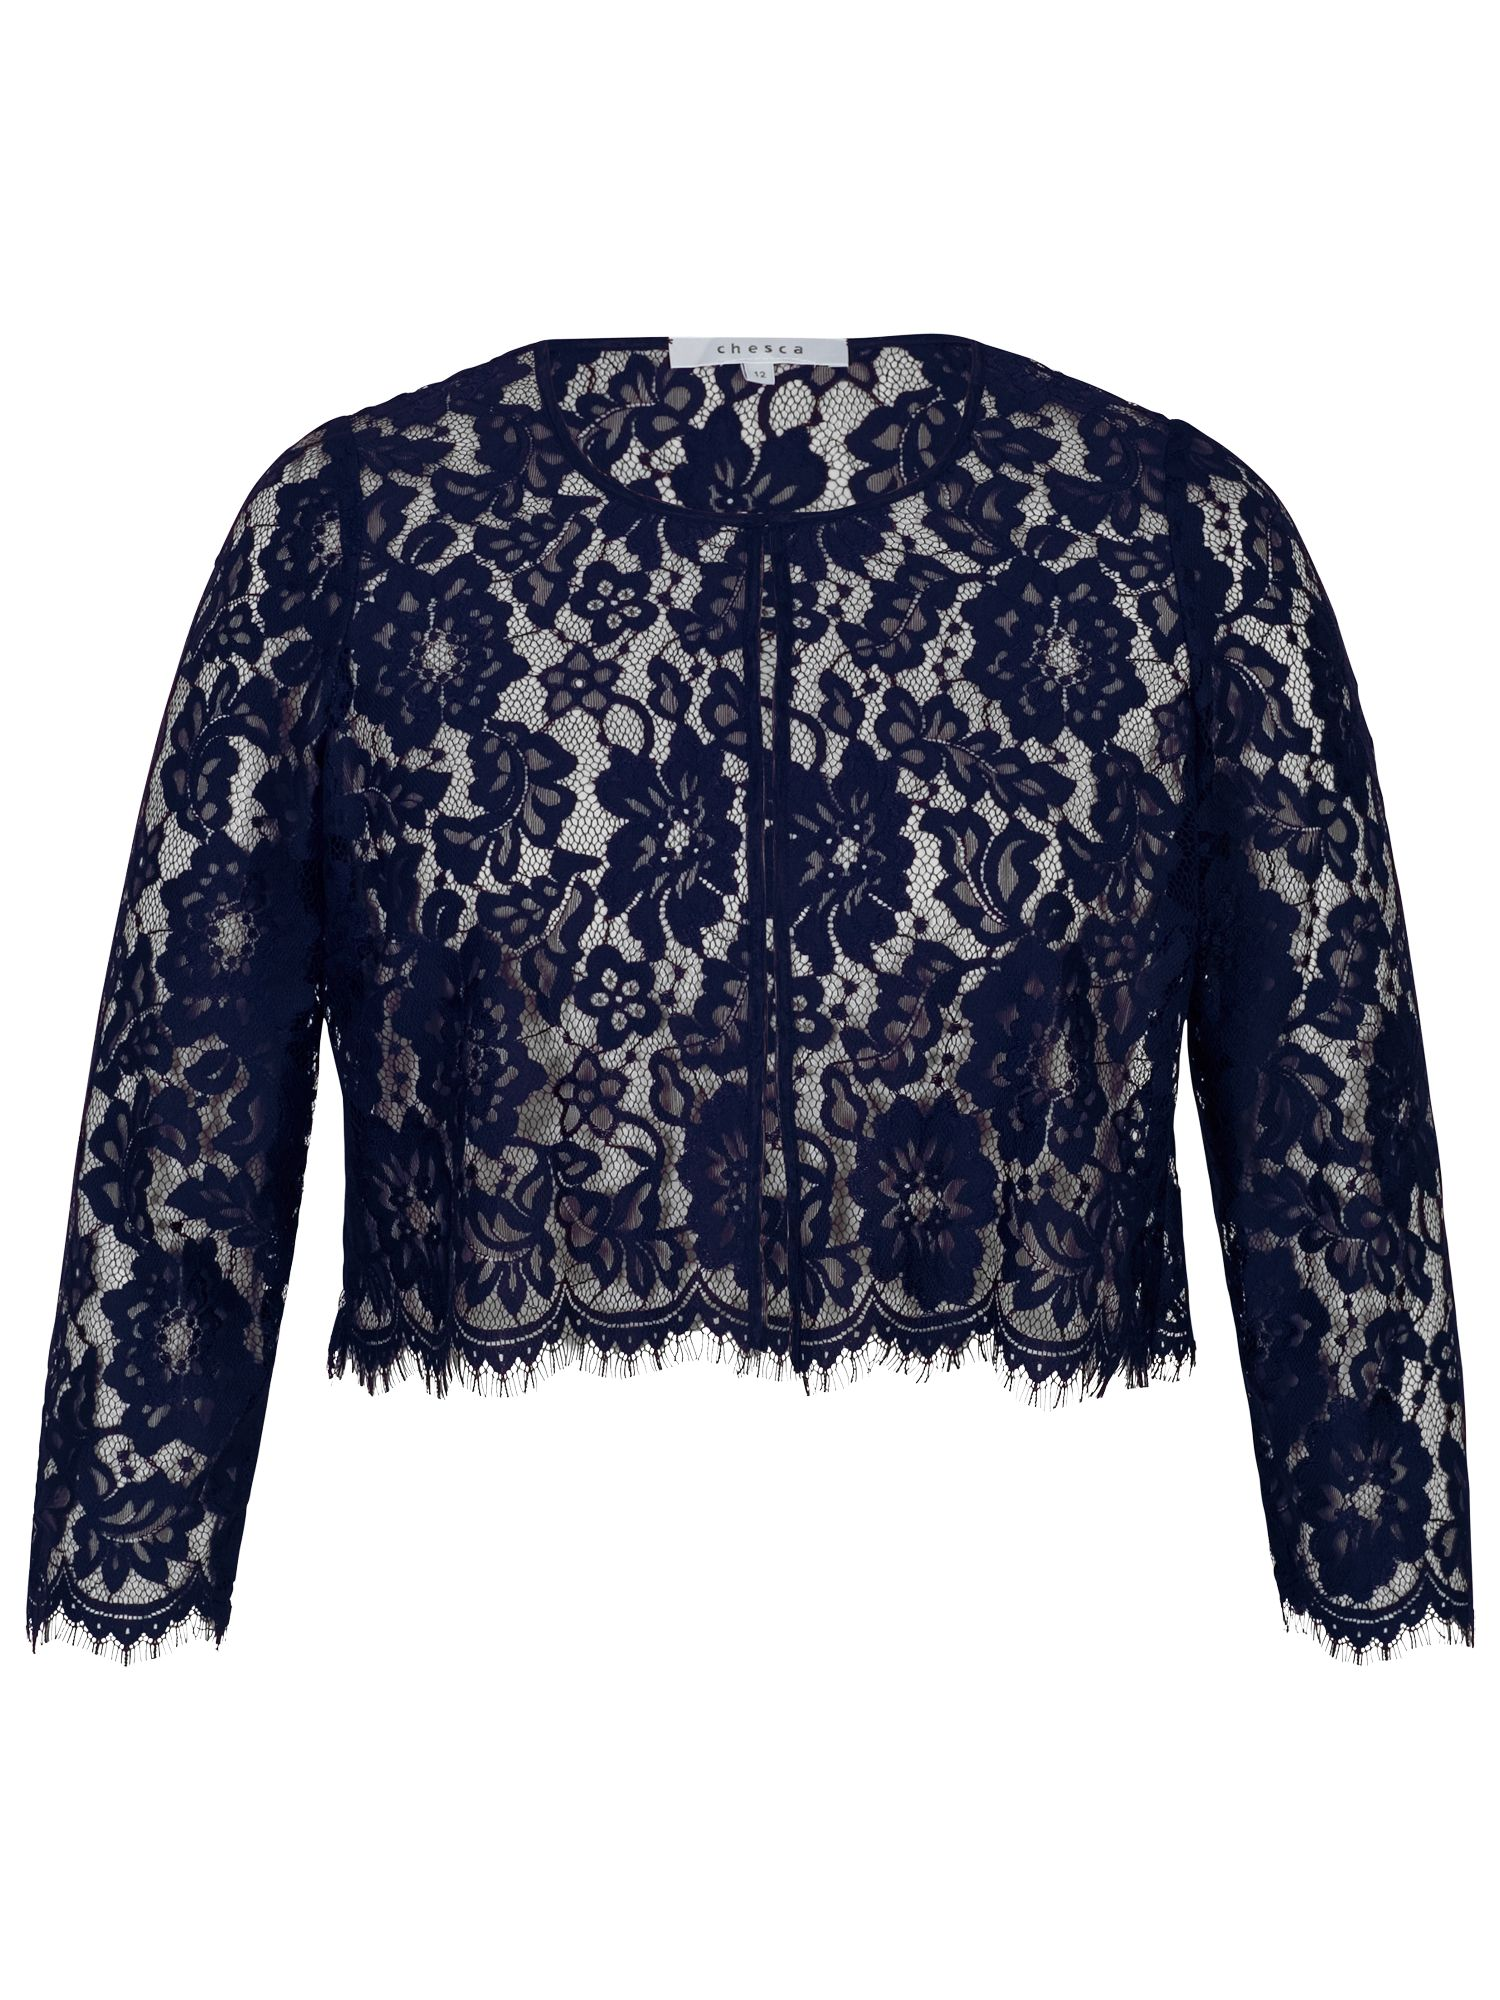 Chesca Chesca Scallop Trim Lace Jacket